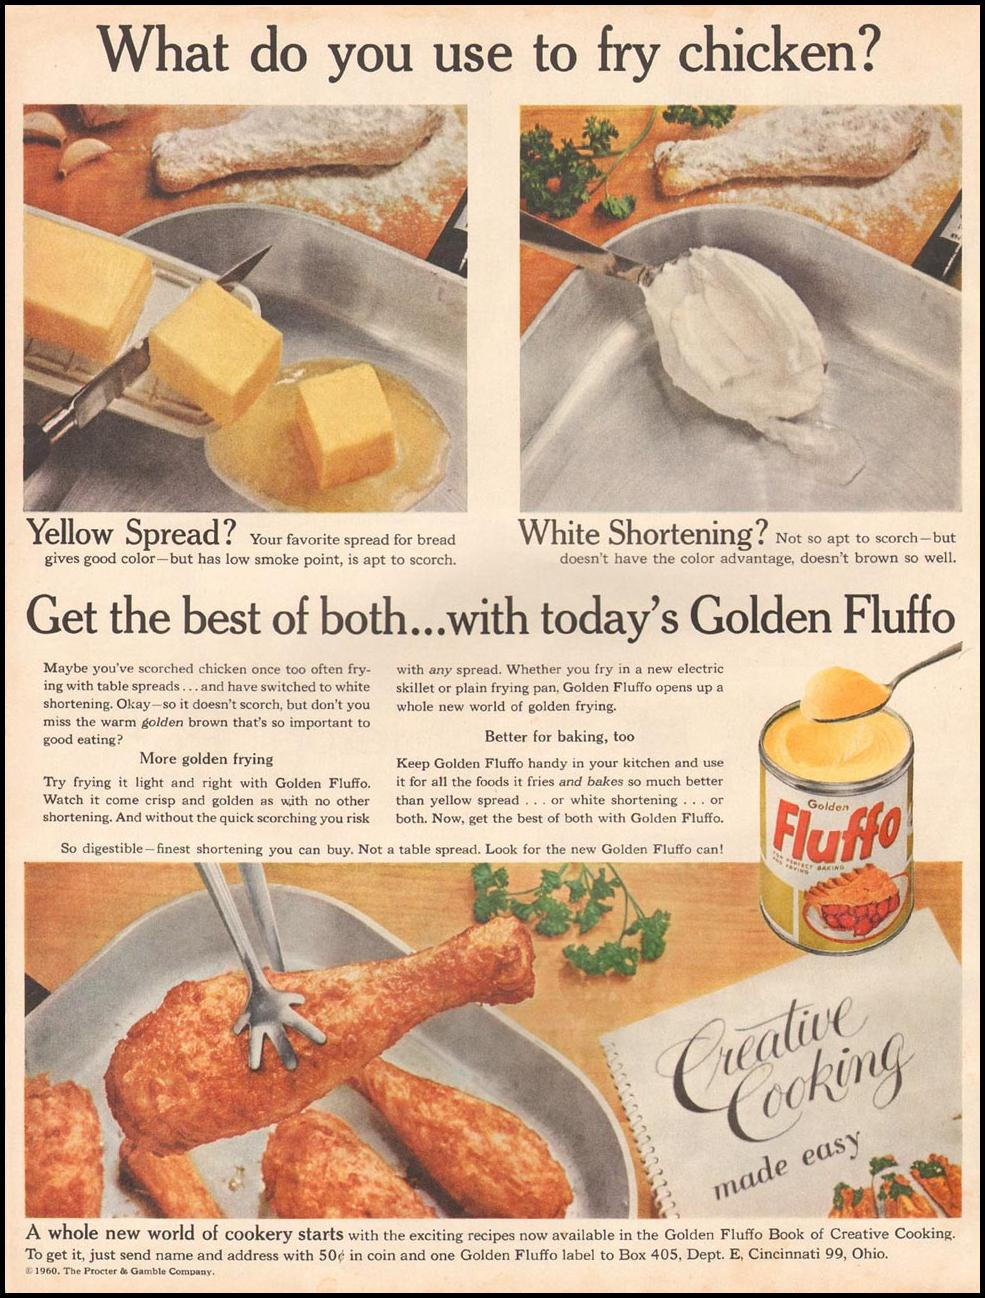 GOLDEN FLUFFO SHORTENING BETTER HOMES AND GARDENS 03/01/1960 p. 96